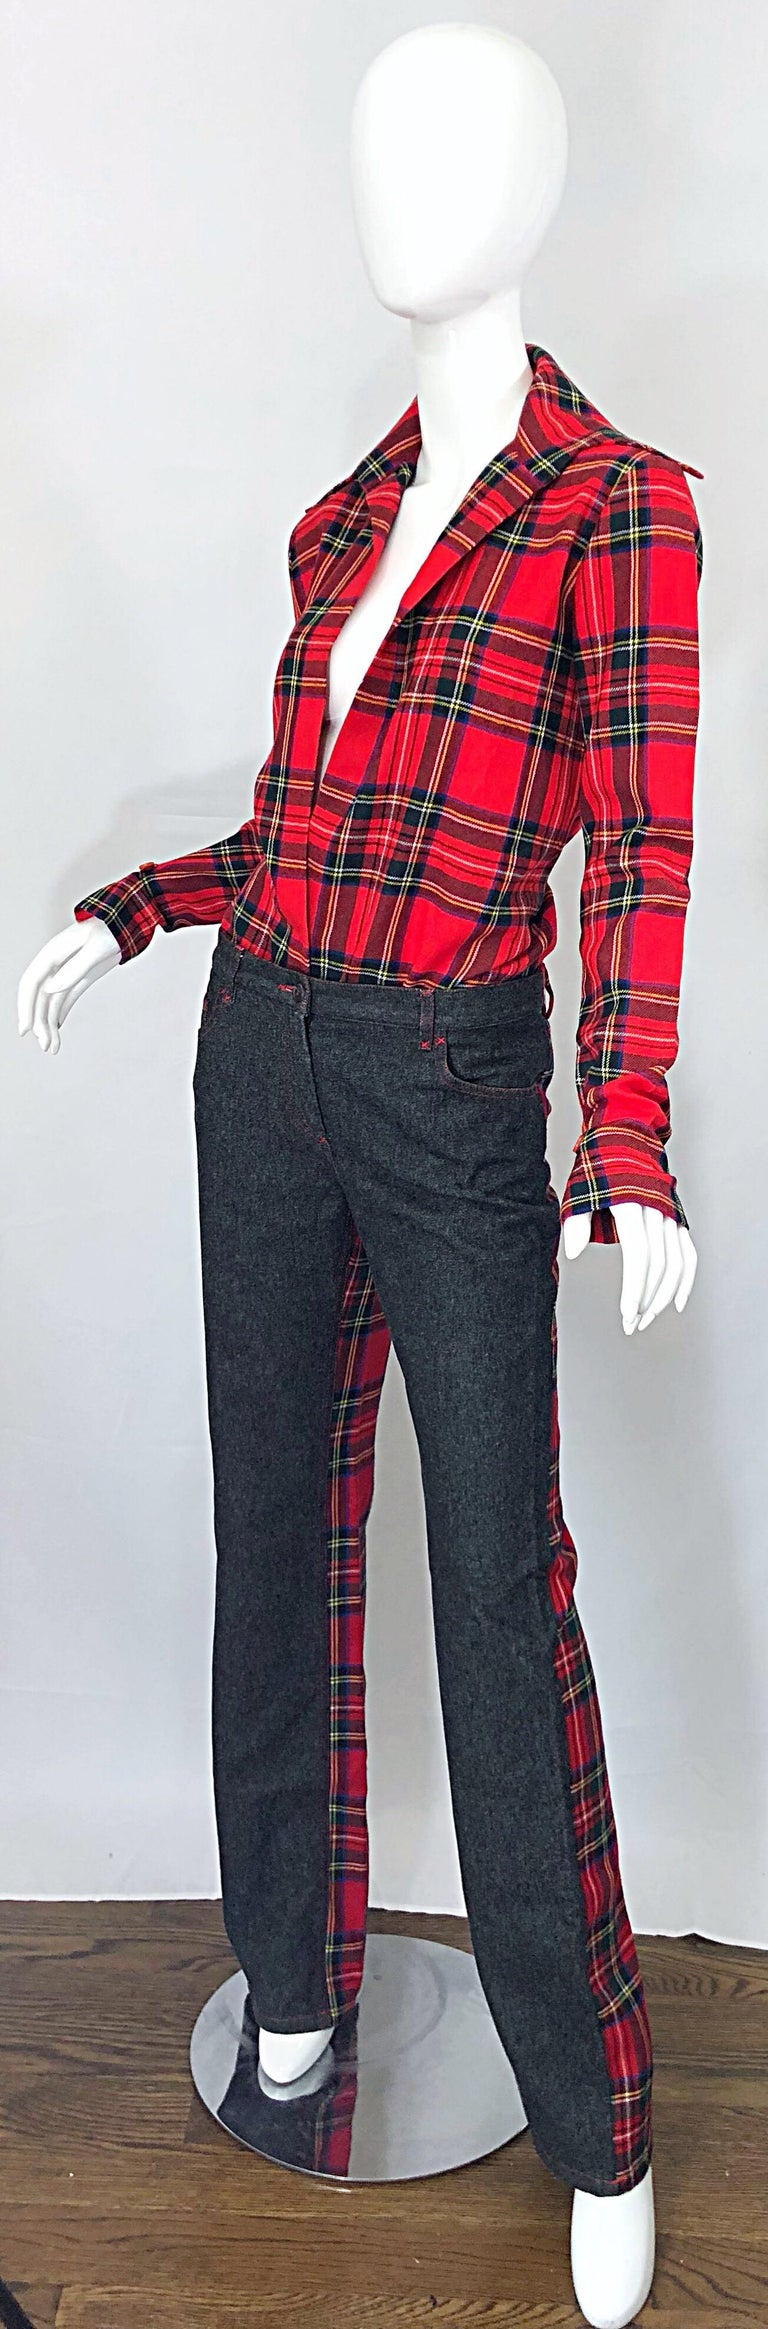 Women's Rare 1990s Dolce & Gabbana Red Tartan Plaid Wool + Denim Flared Jeans and Shirt For Sale